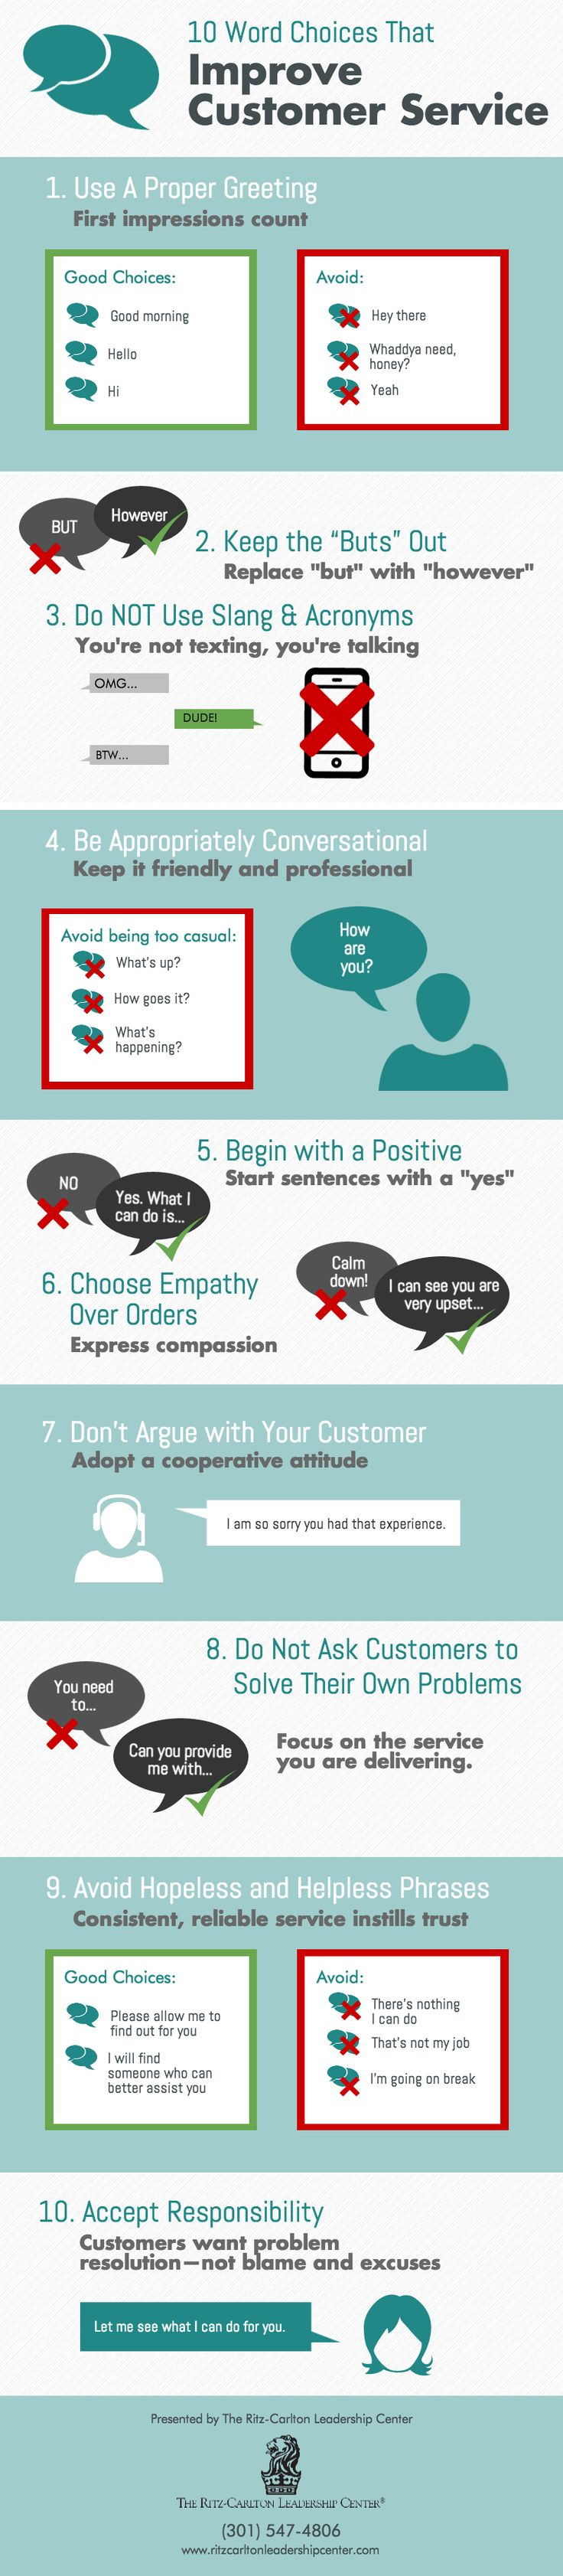 best ideas about customer service jobs make this customer service infographic from the ritz carlton leadership center offers 10 word choices that will help you improve customer service skills more